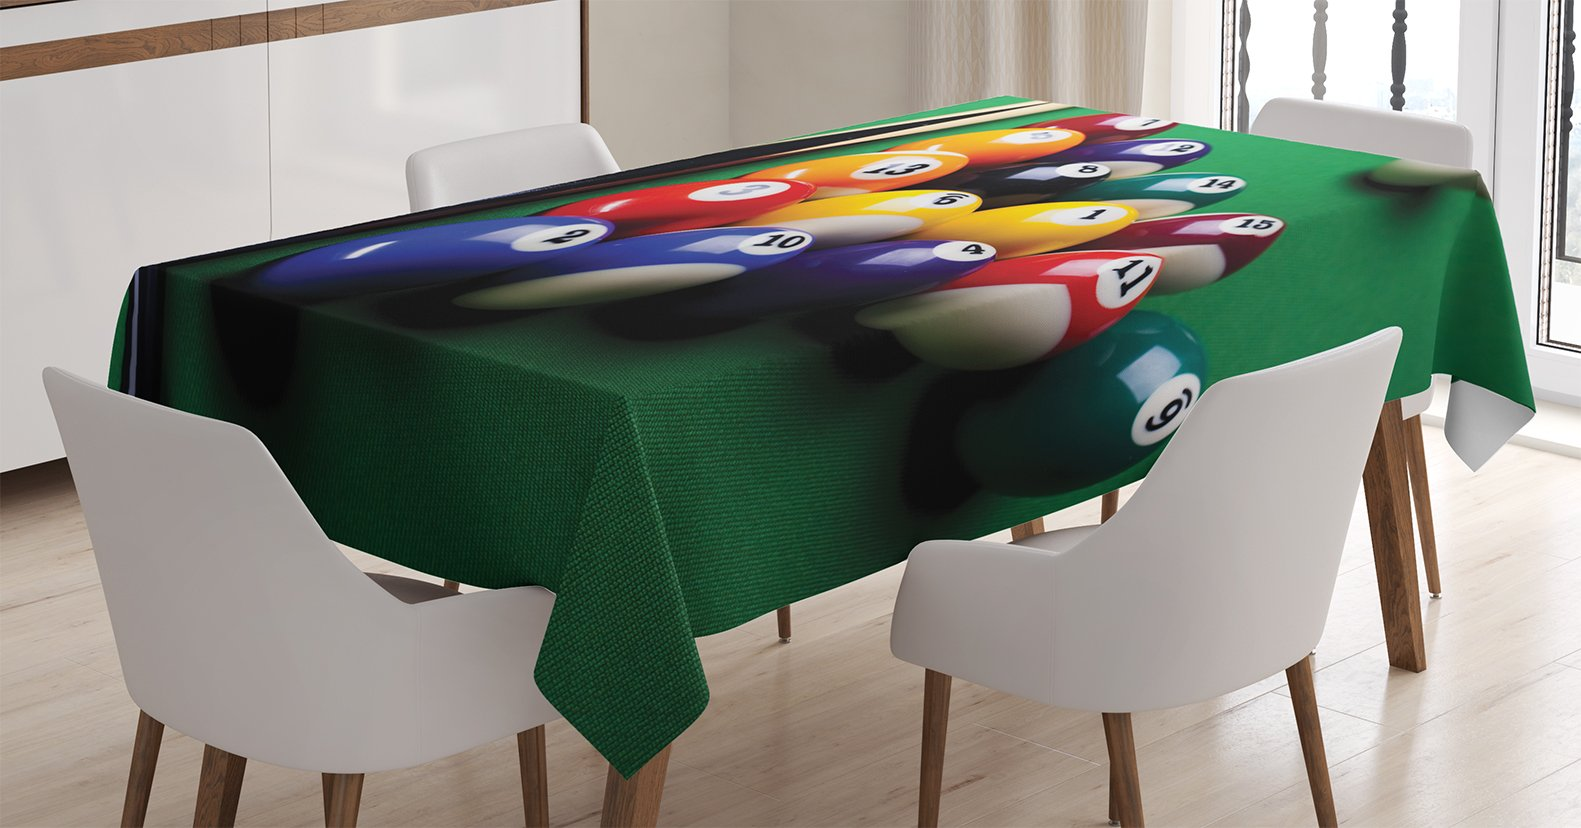 Ambesonne Manly Decor Tablecloth, Billiard Pool Balls Arrangement Snooker Contest Beginning Entertainment Game, Dining Room Kitchen Rectangular Table Cover, 60 X 90 inches